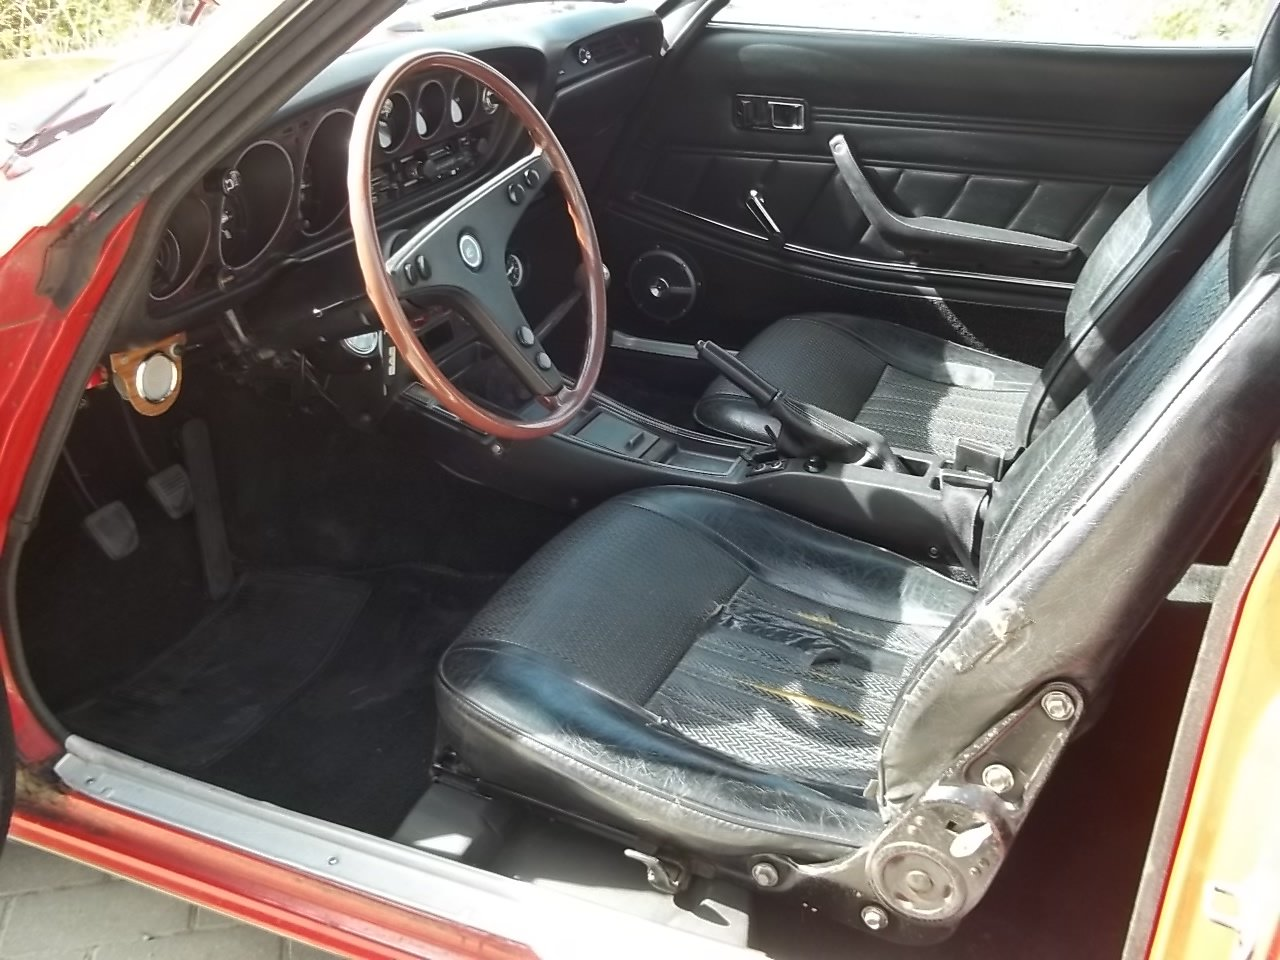 1973 Toyota Celica TA22 1600ST  1 owner from new For Sale (picture 5 of 6)